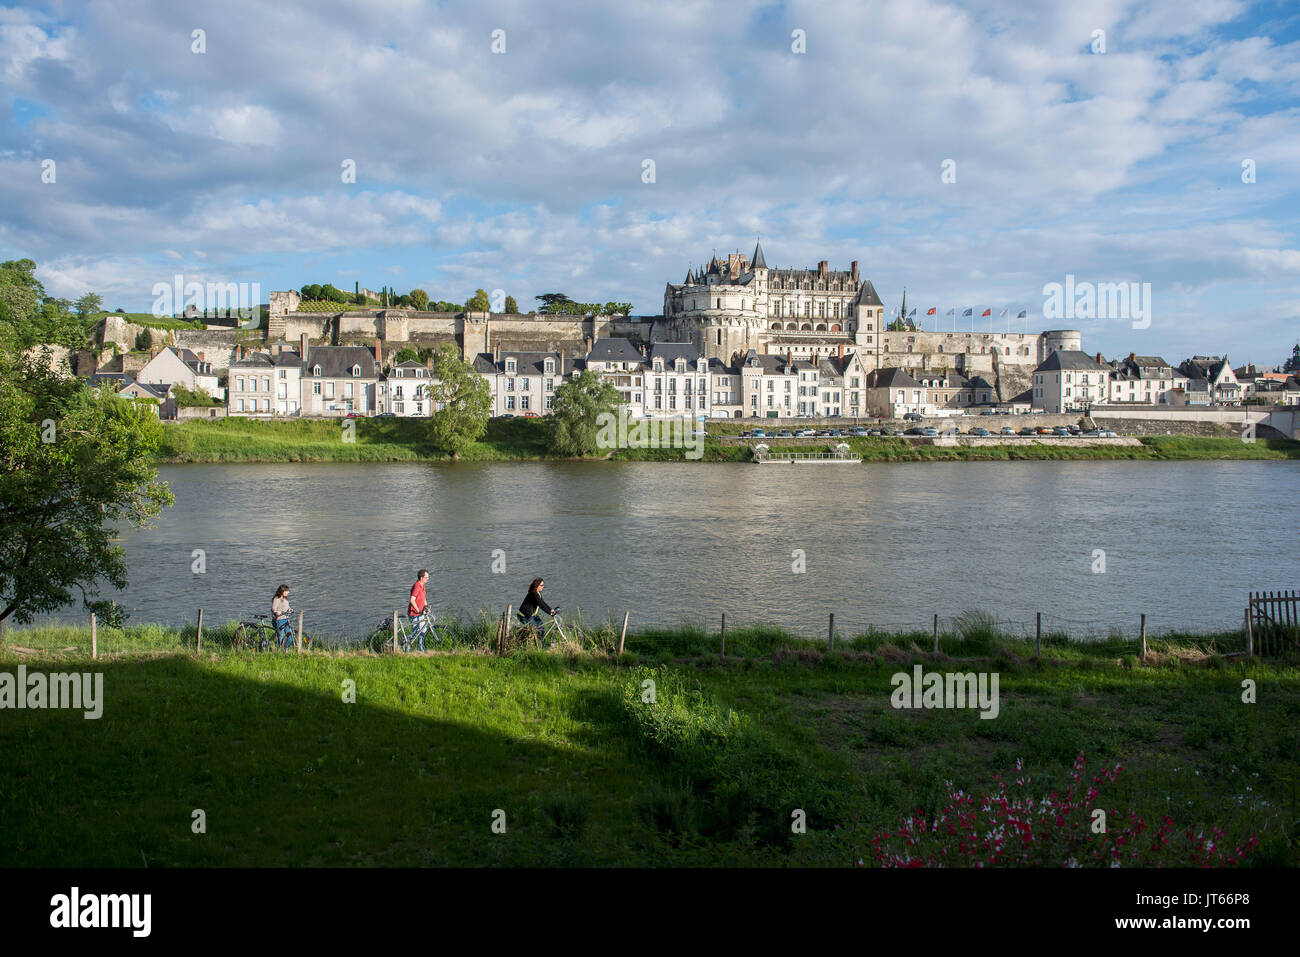 Amboise (central France): the River Loire, the city and the castle.  The Chateau d'Amboise belongs to the castles Stock Photo